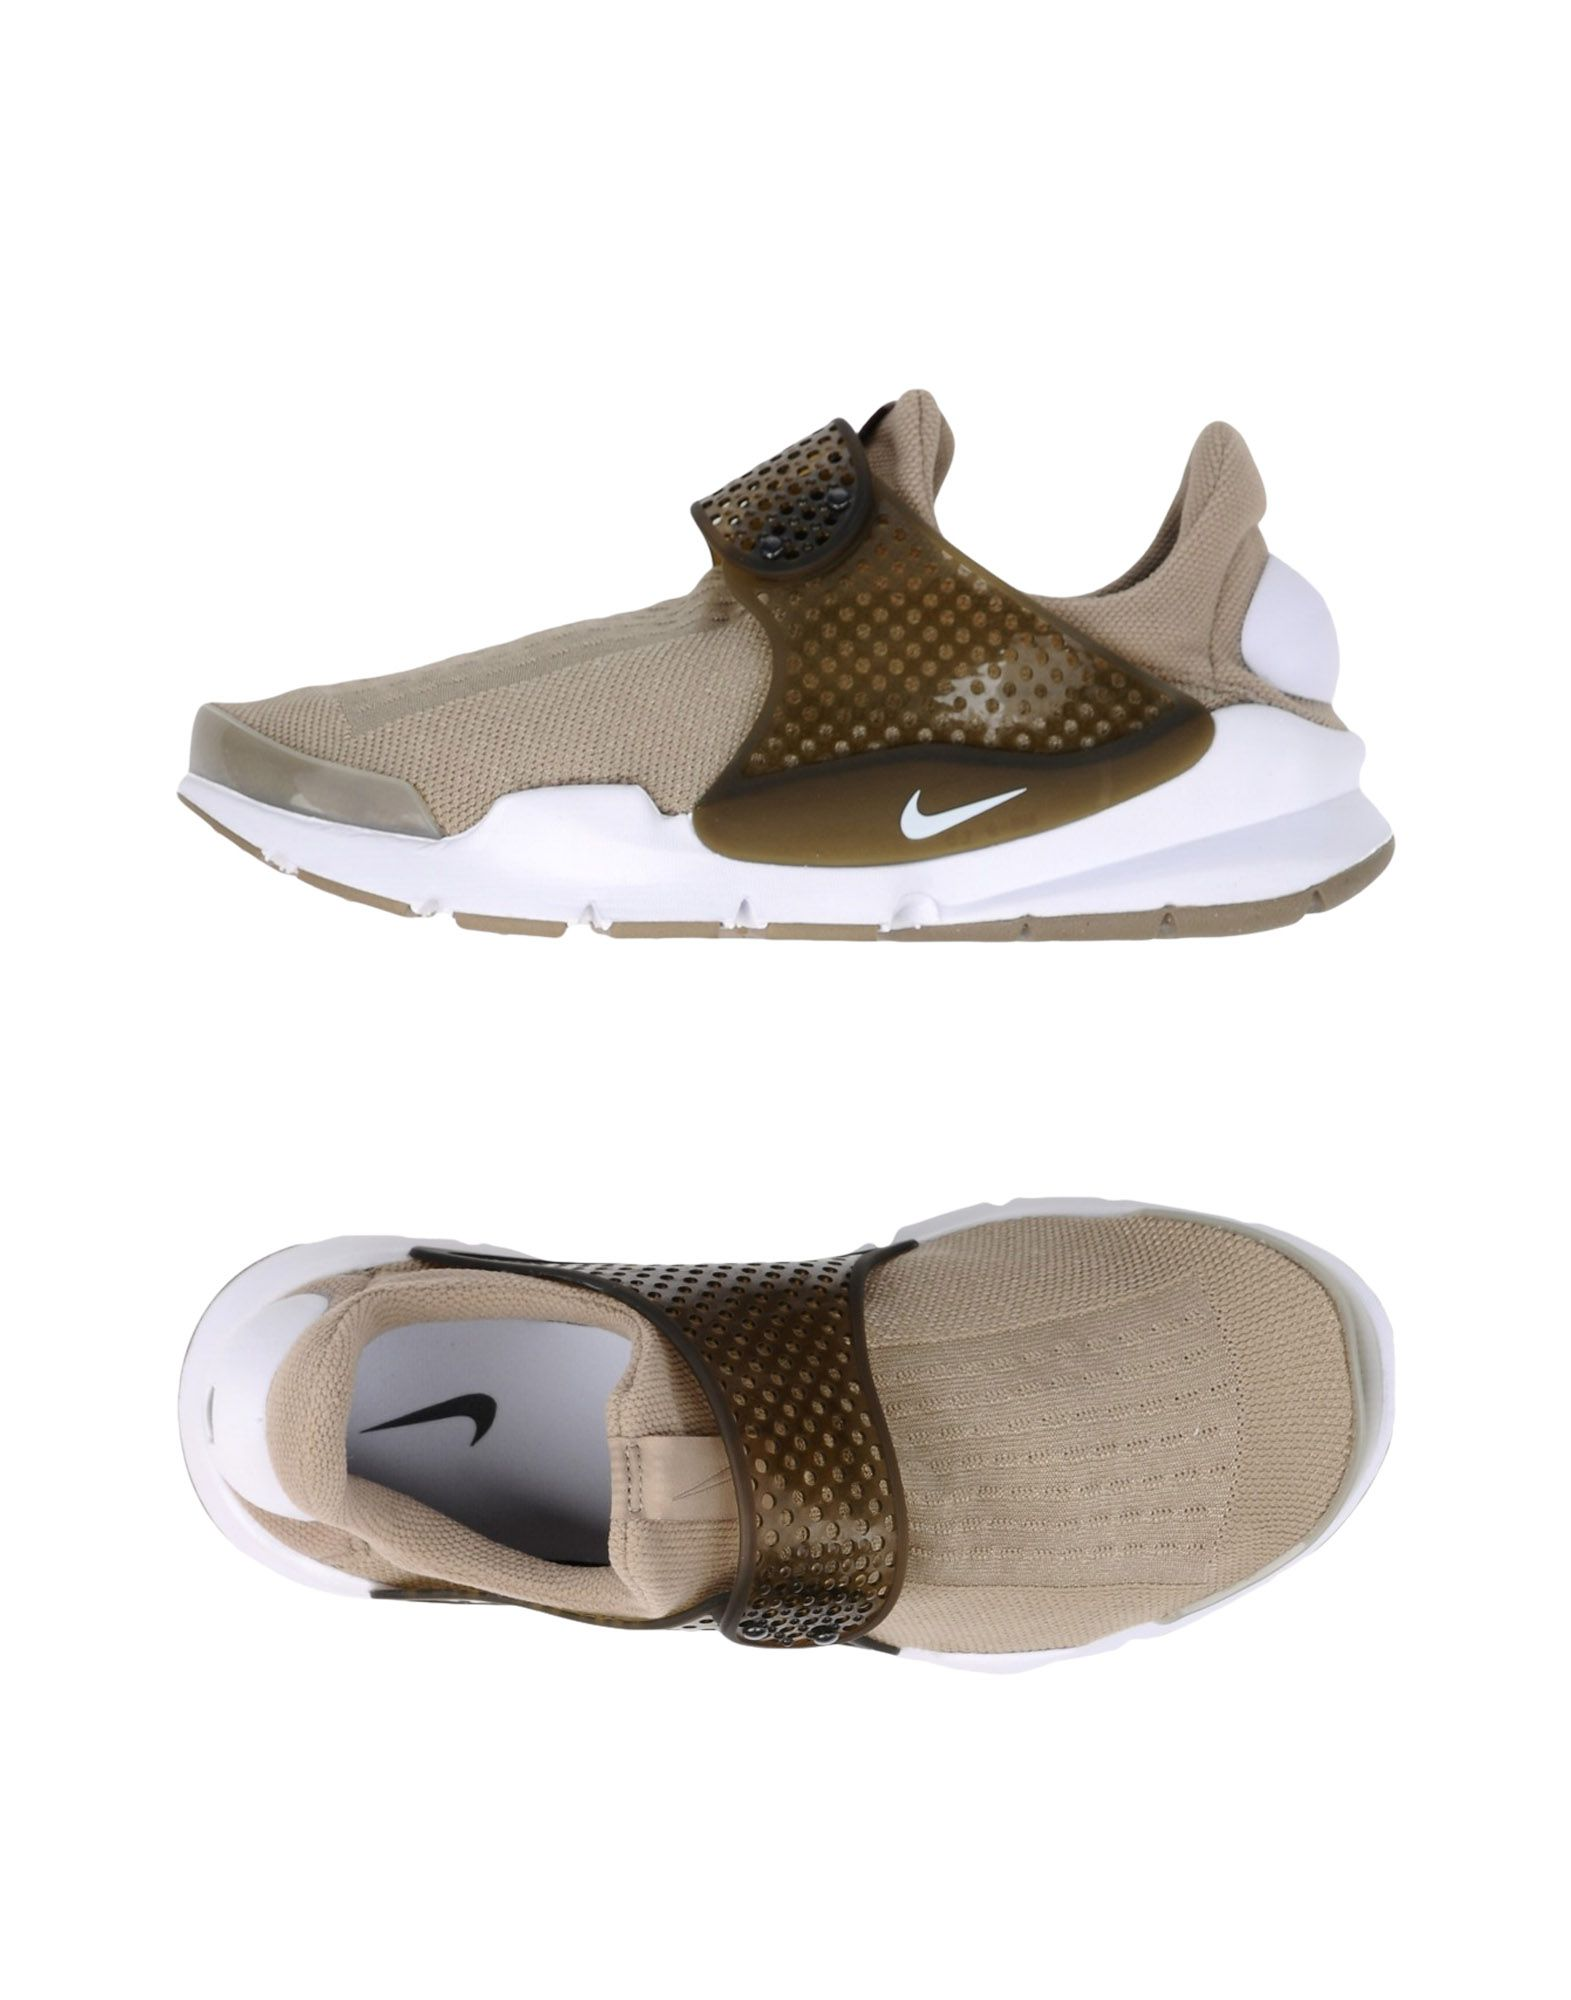 Sneakers Nike Homme - Sneakers Nike  Beige Chaussures femme pas cher homme et femme